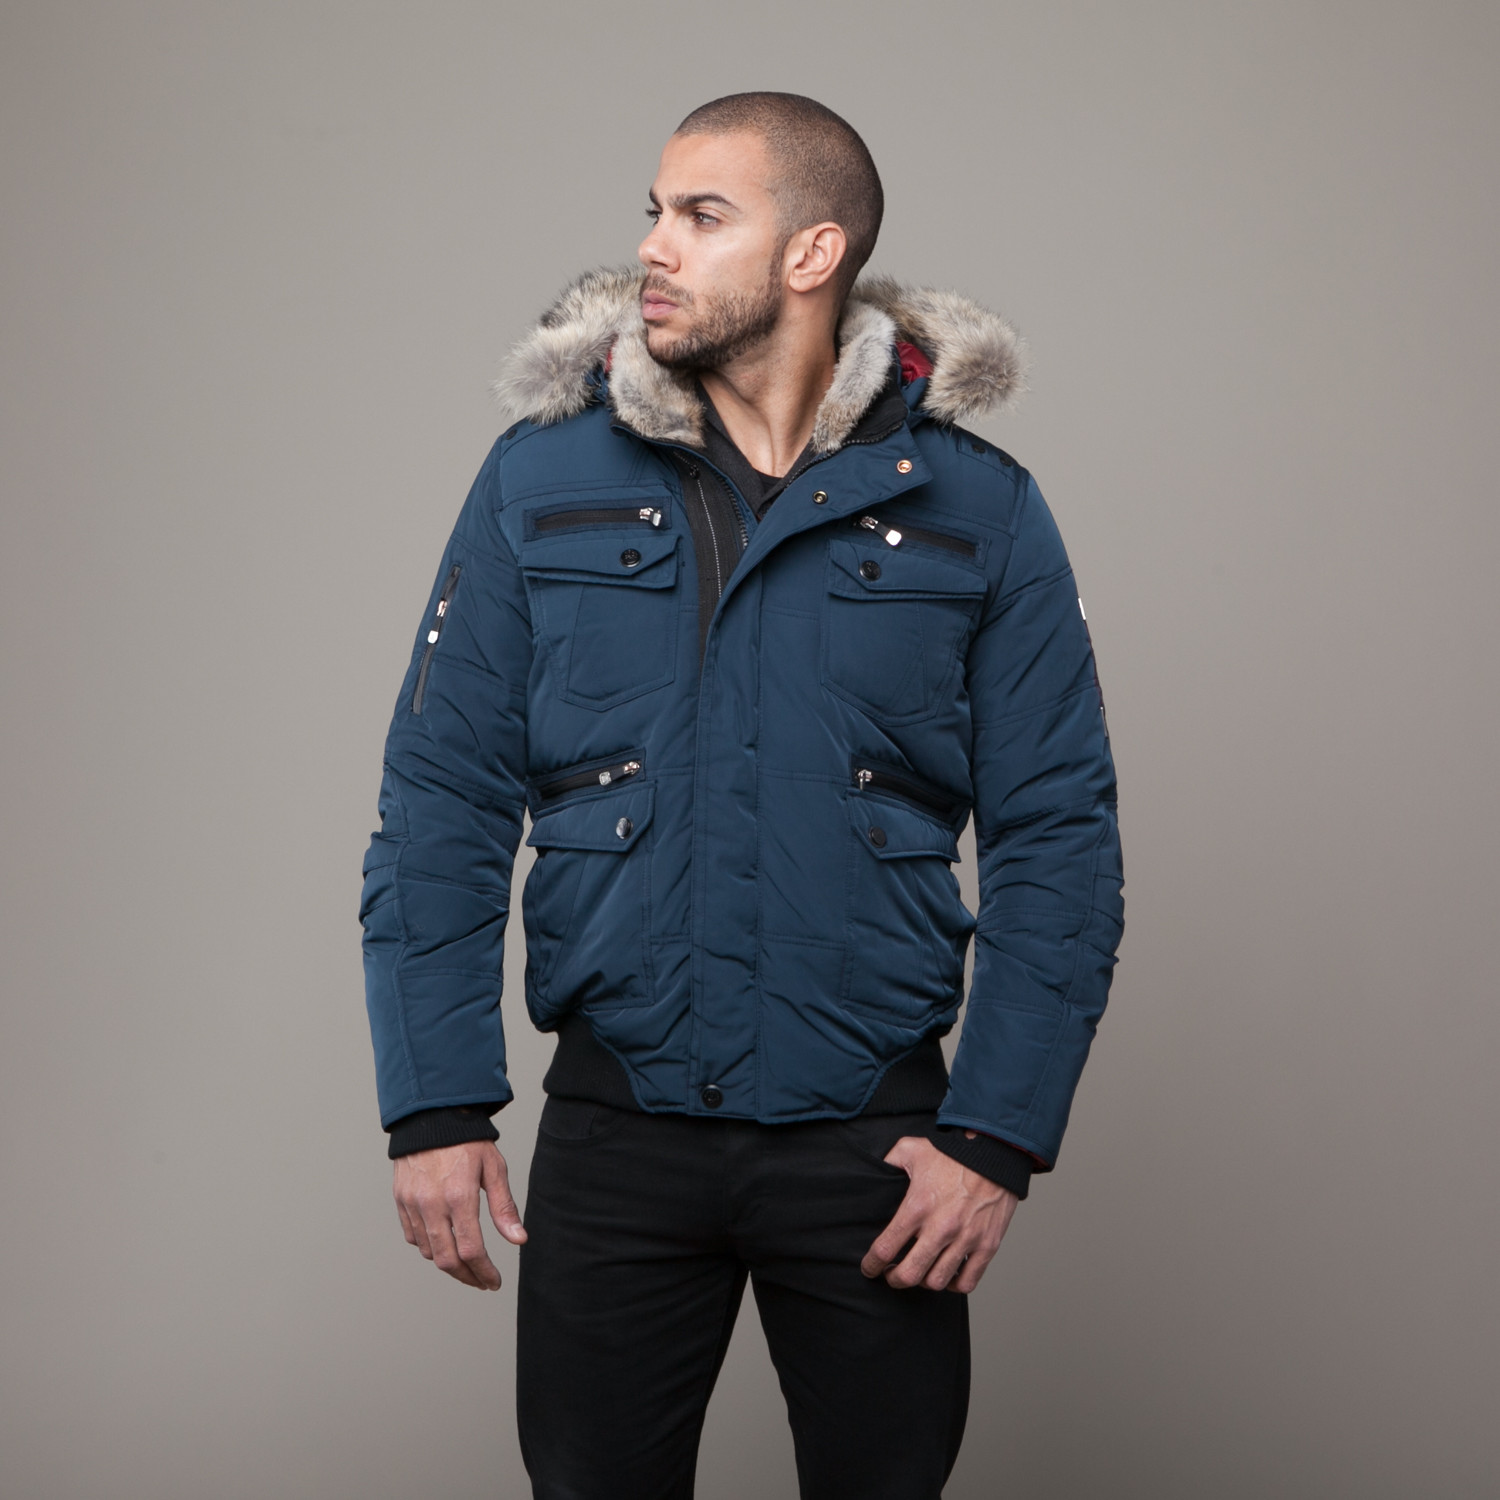 Oxford Down Bomber Jacket // Galaxy (XL) - Point Zero - Touch of